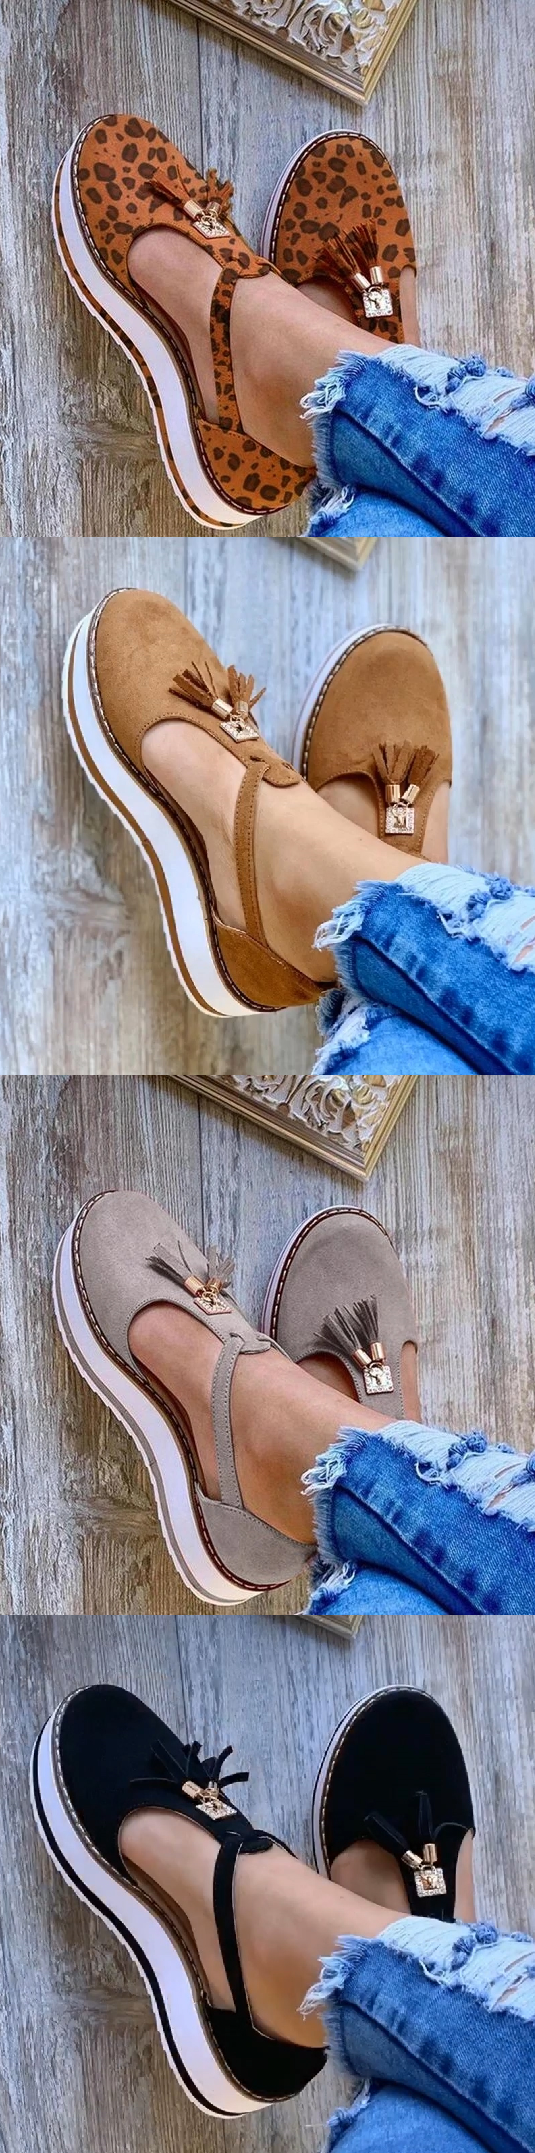 Hot Suede Sandals.Free Shipping Over $79.First Order Get 5% Off (Code:5new).Shop Now!